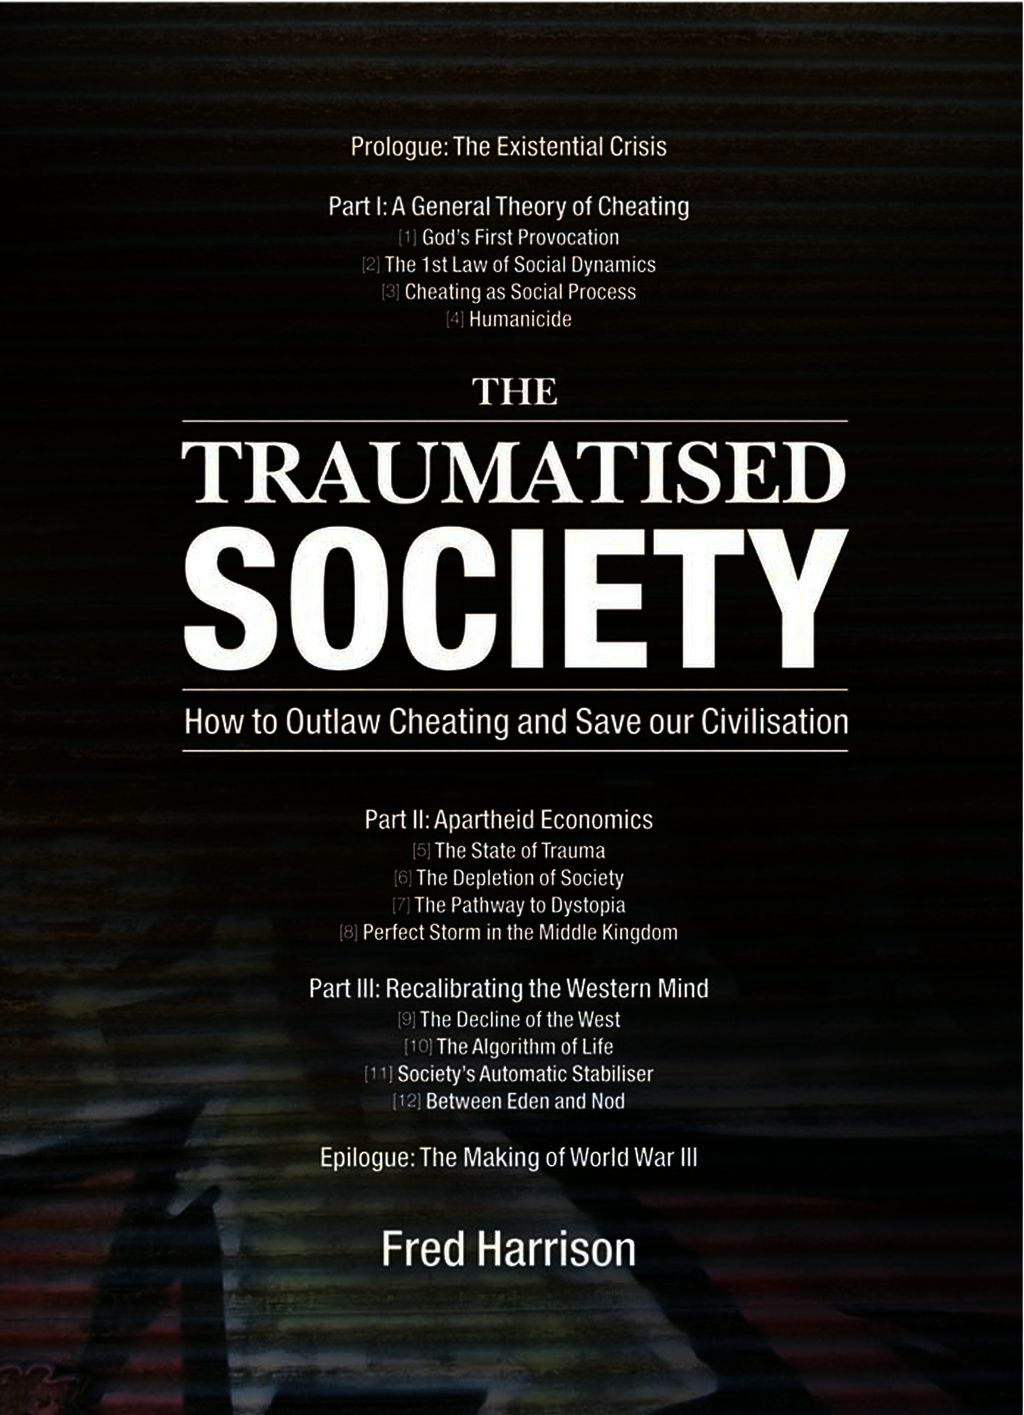 The Traumatised Society